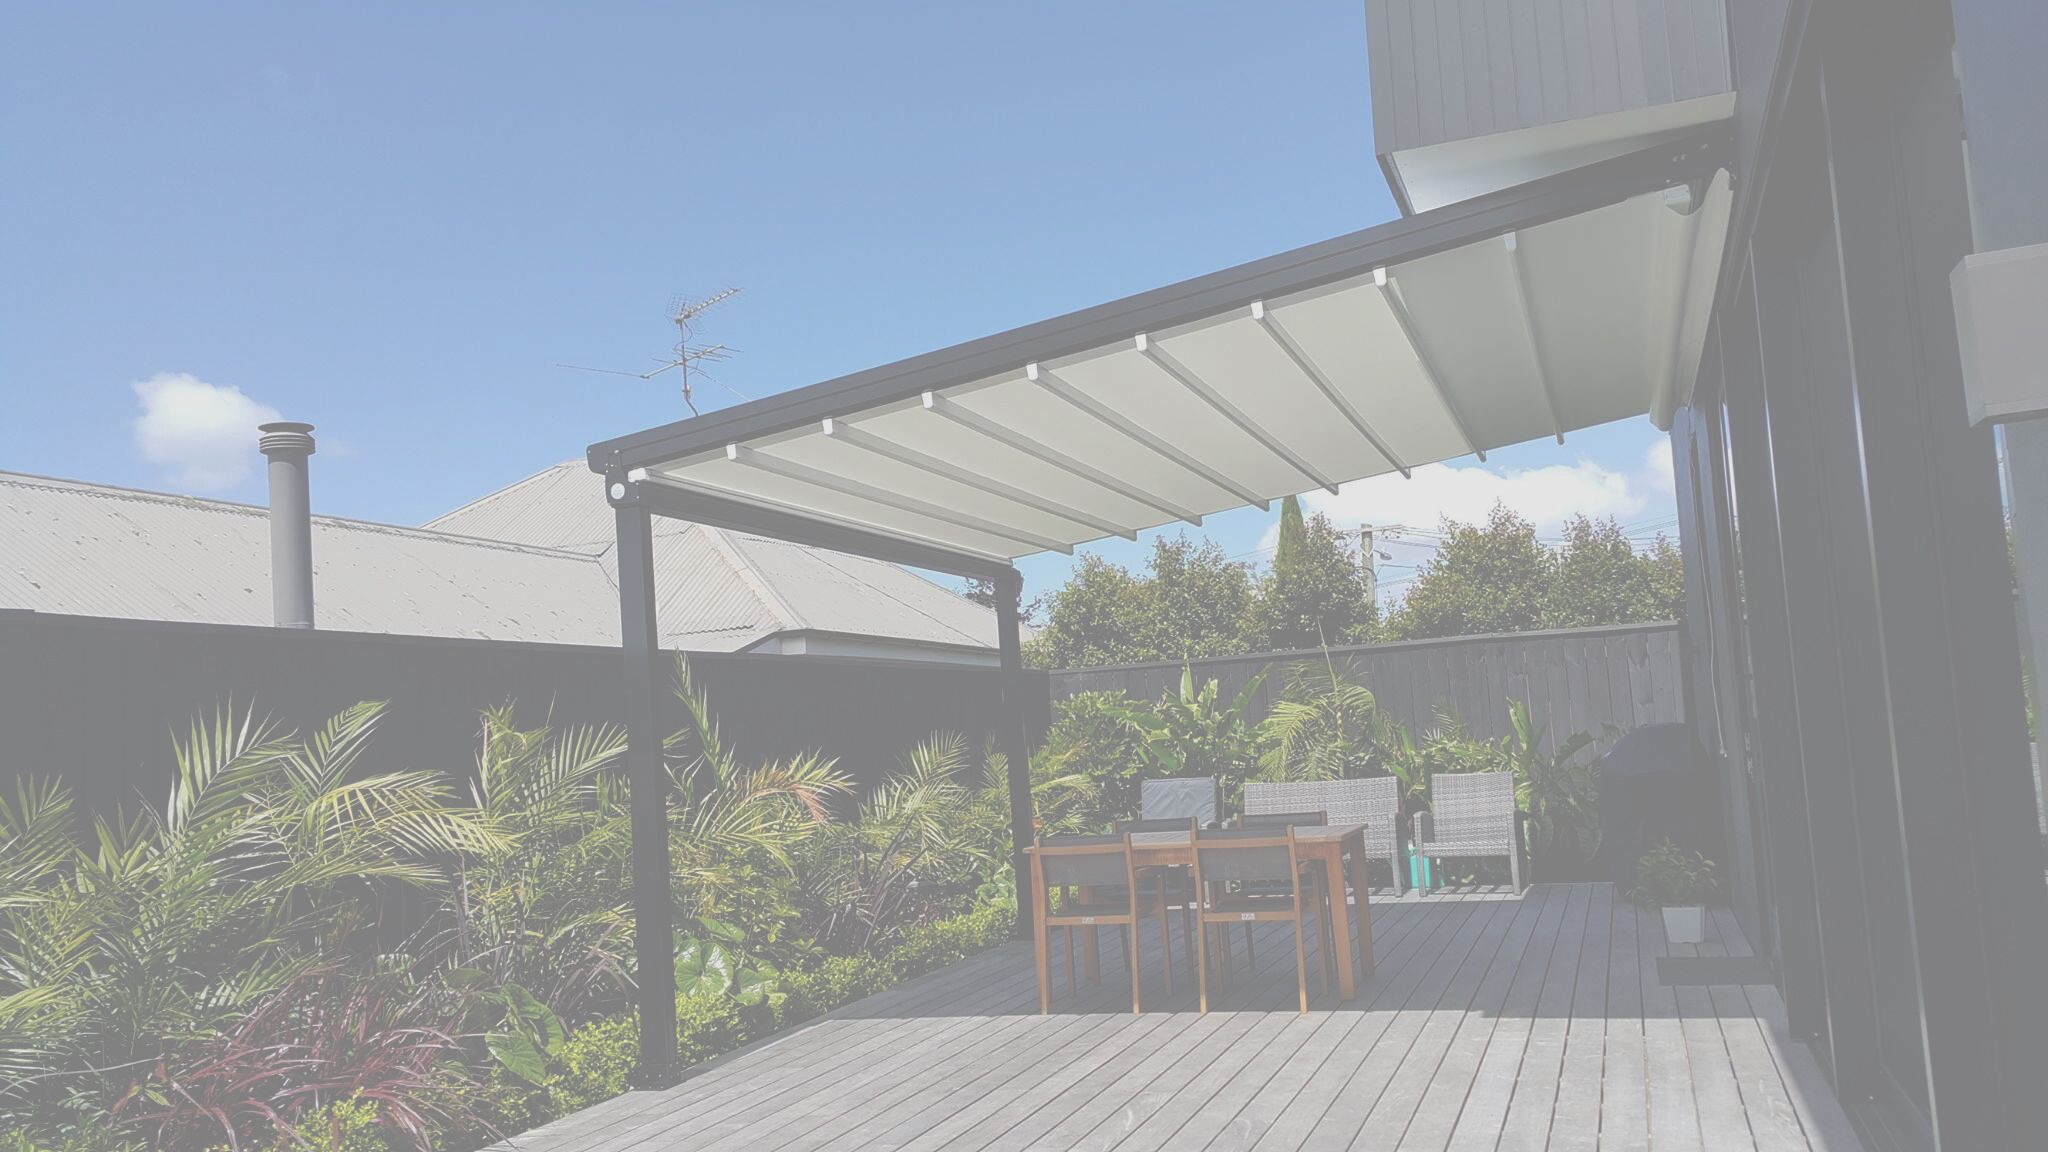 CANOPY SOLUTIONS